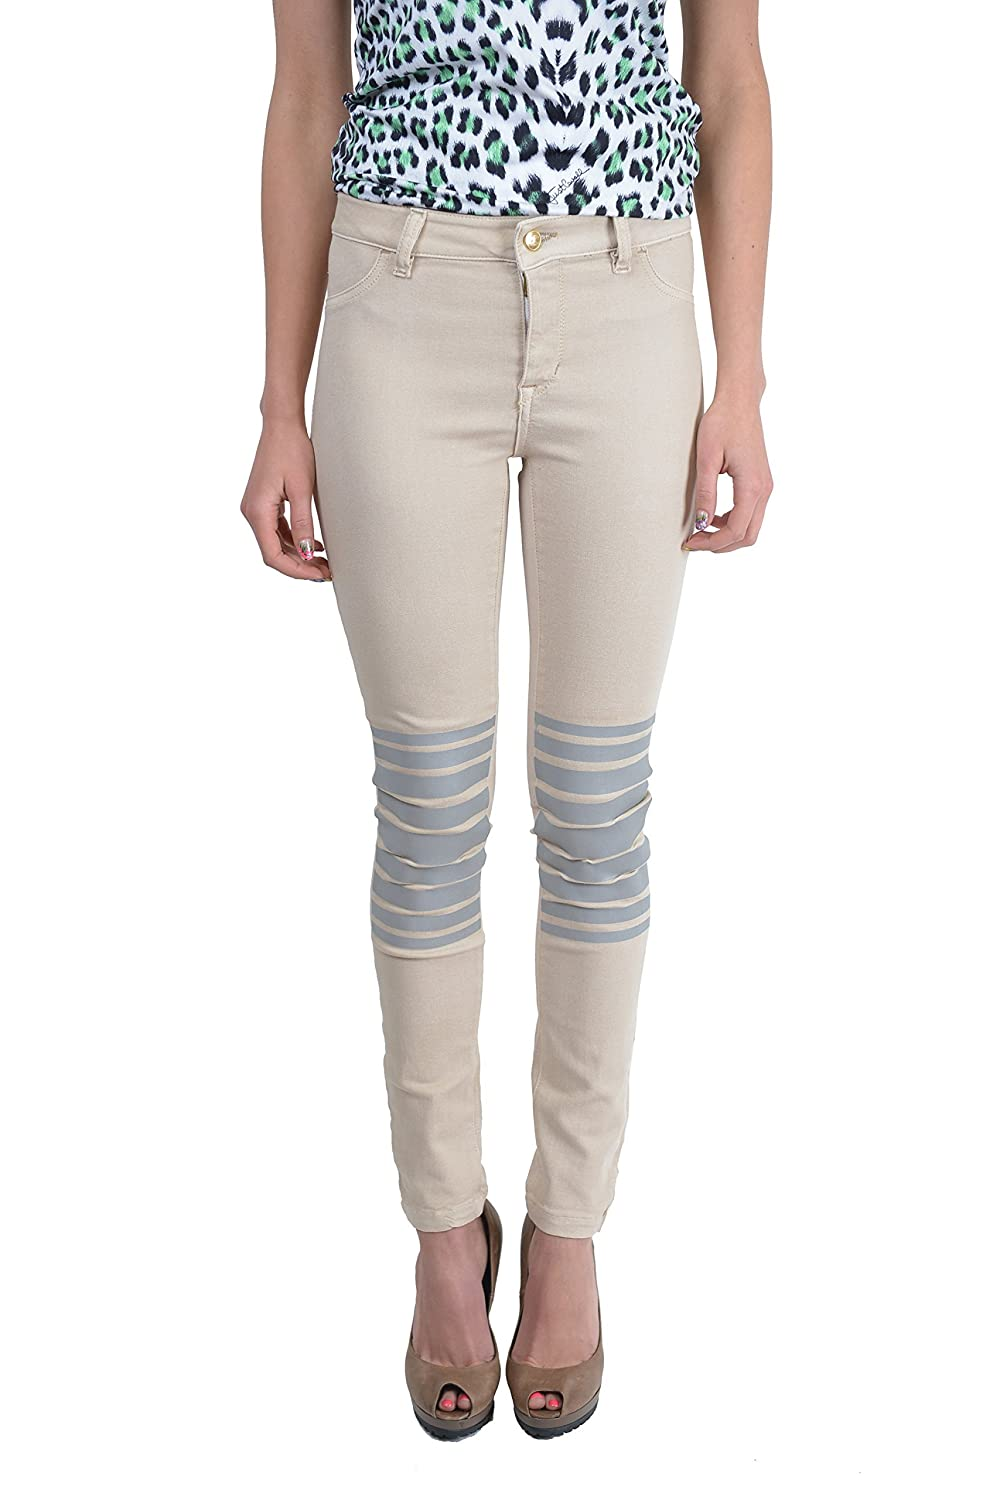 Just Cavalli Women's 'Just Chic' Beige Jeggings Stretch Pants US 26 IT 40